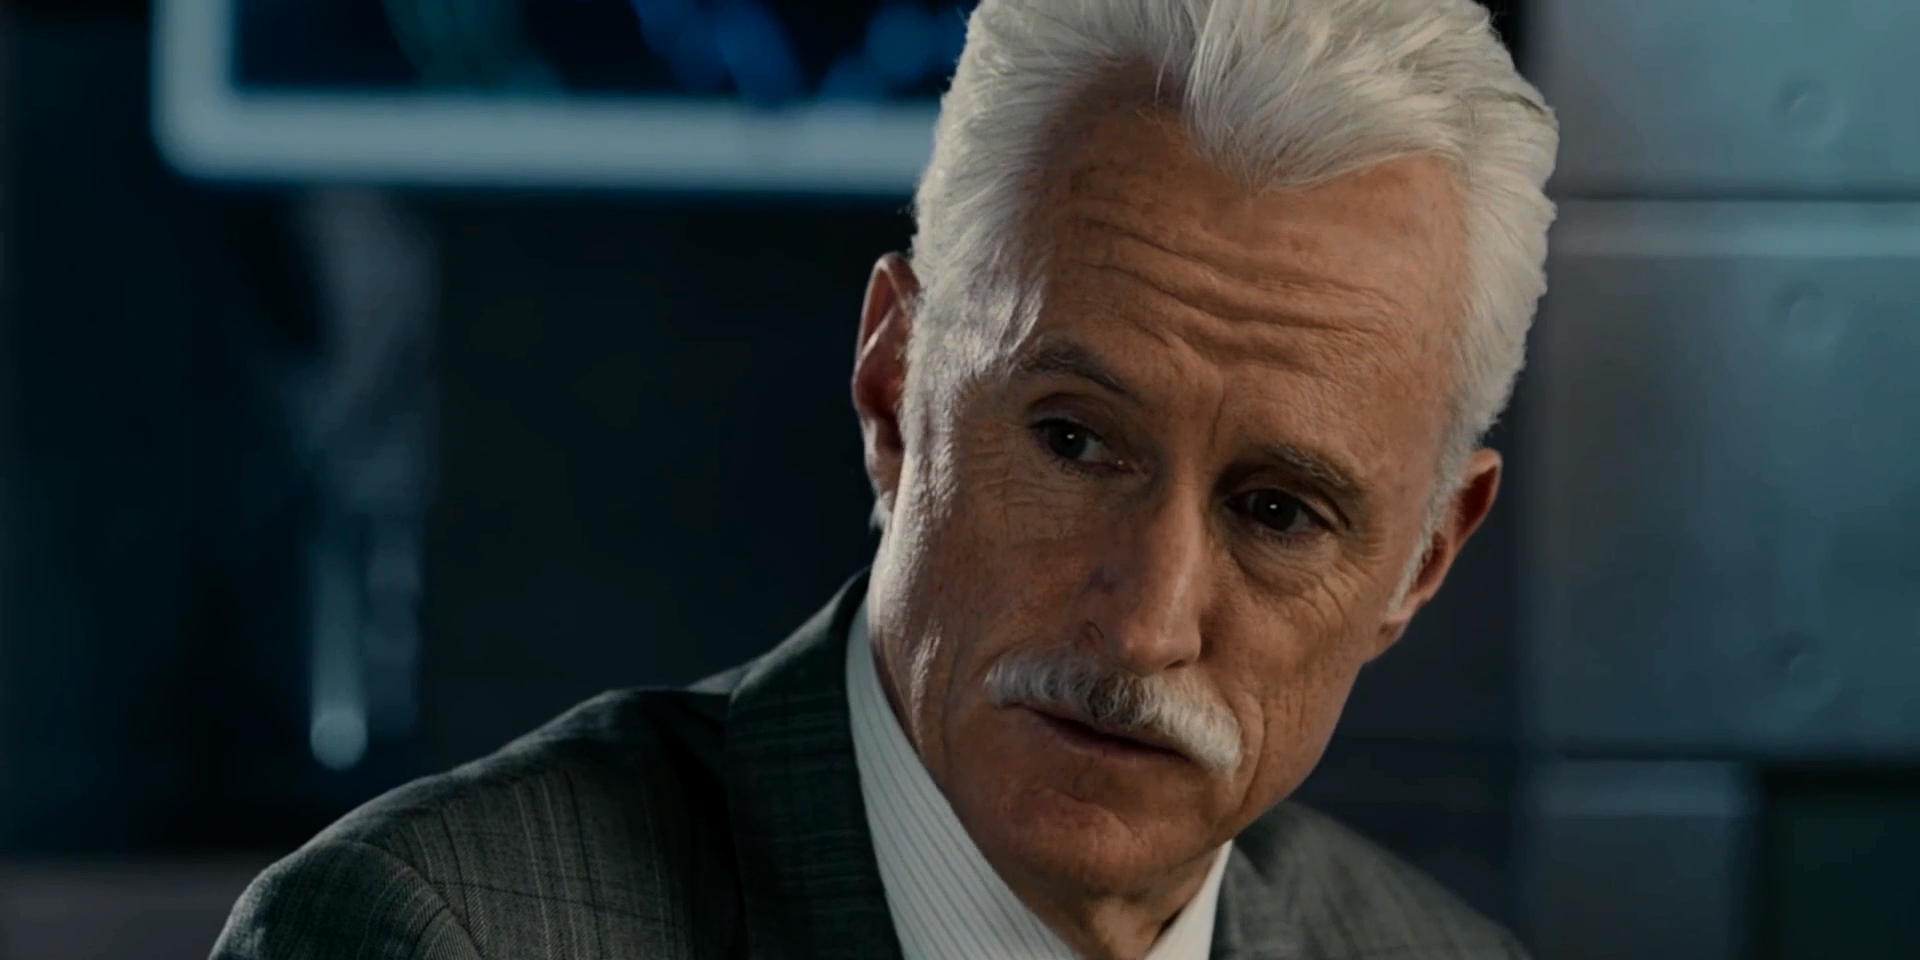 John Slattery as Howard Stark in 'Ant-Man'